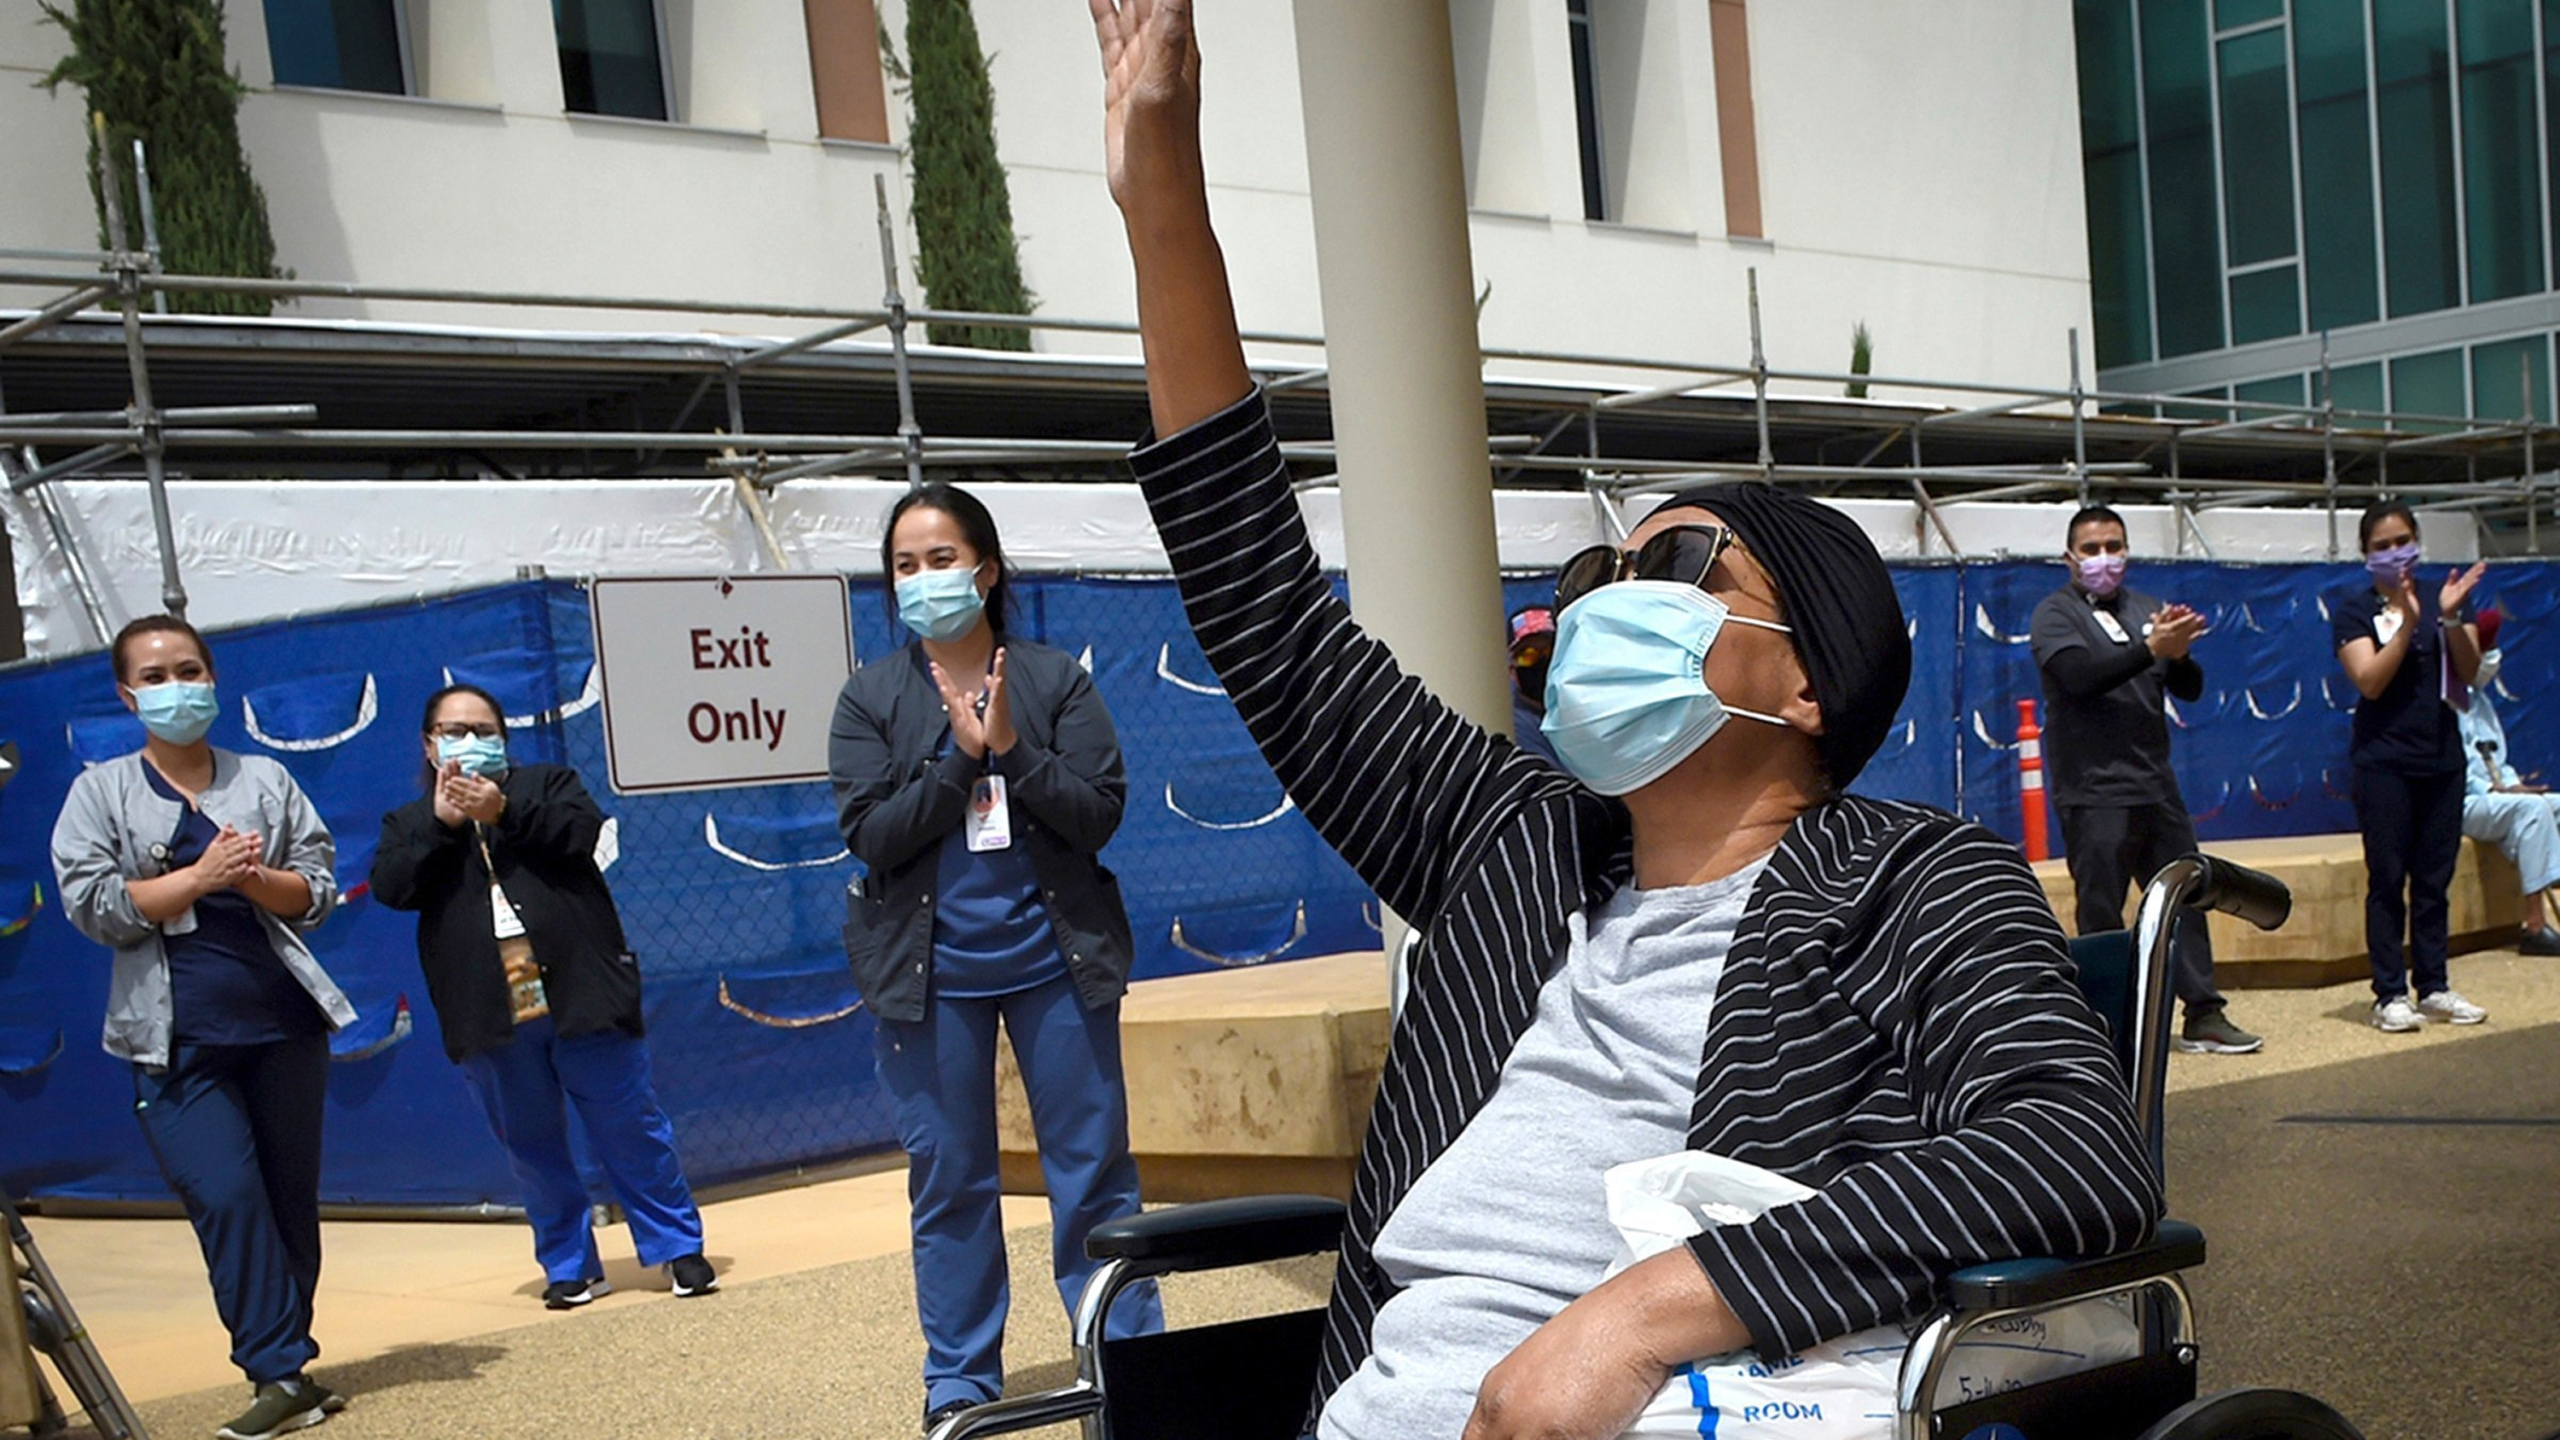 Karen Parker-Bryant, 64, raises a hand skyward after she was released from Clovis Community Hospital in Fresno after a battle with COVID-19 on May 19, 2020. (John Walker / The Fresno Bee via Associated Press)